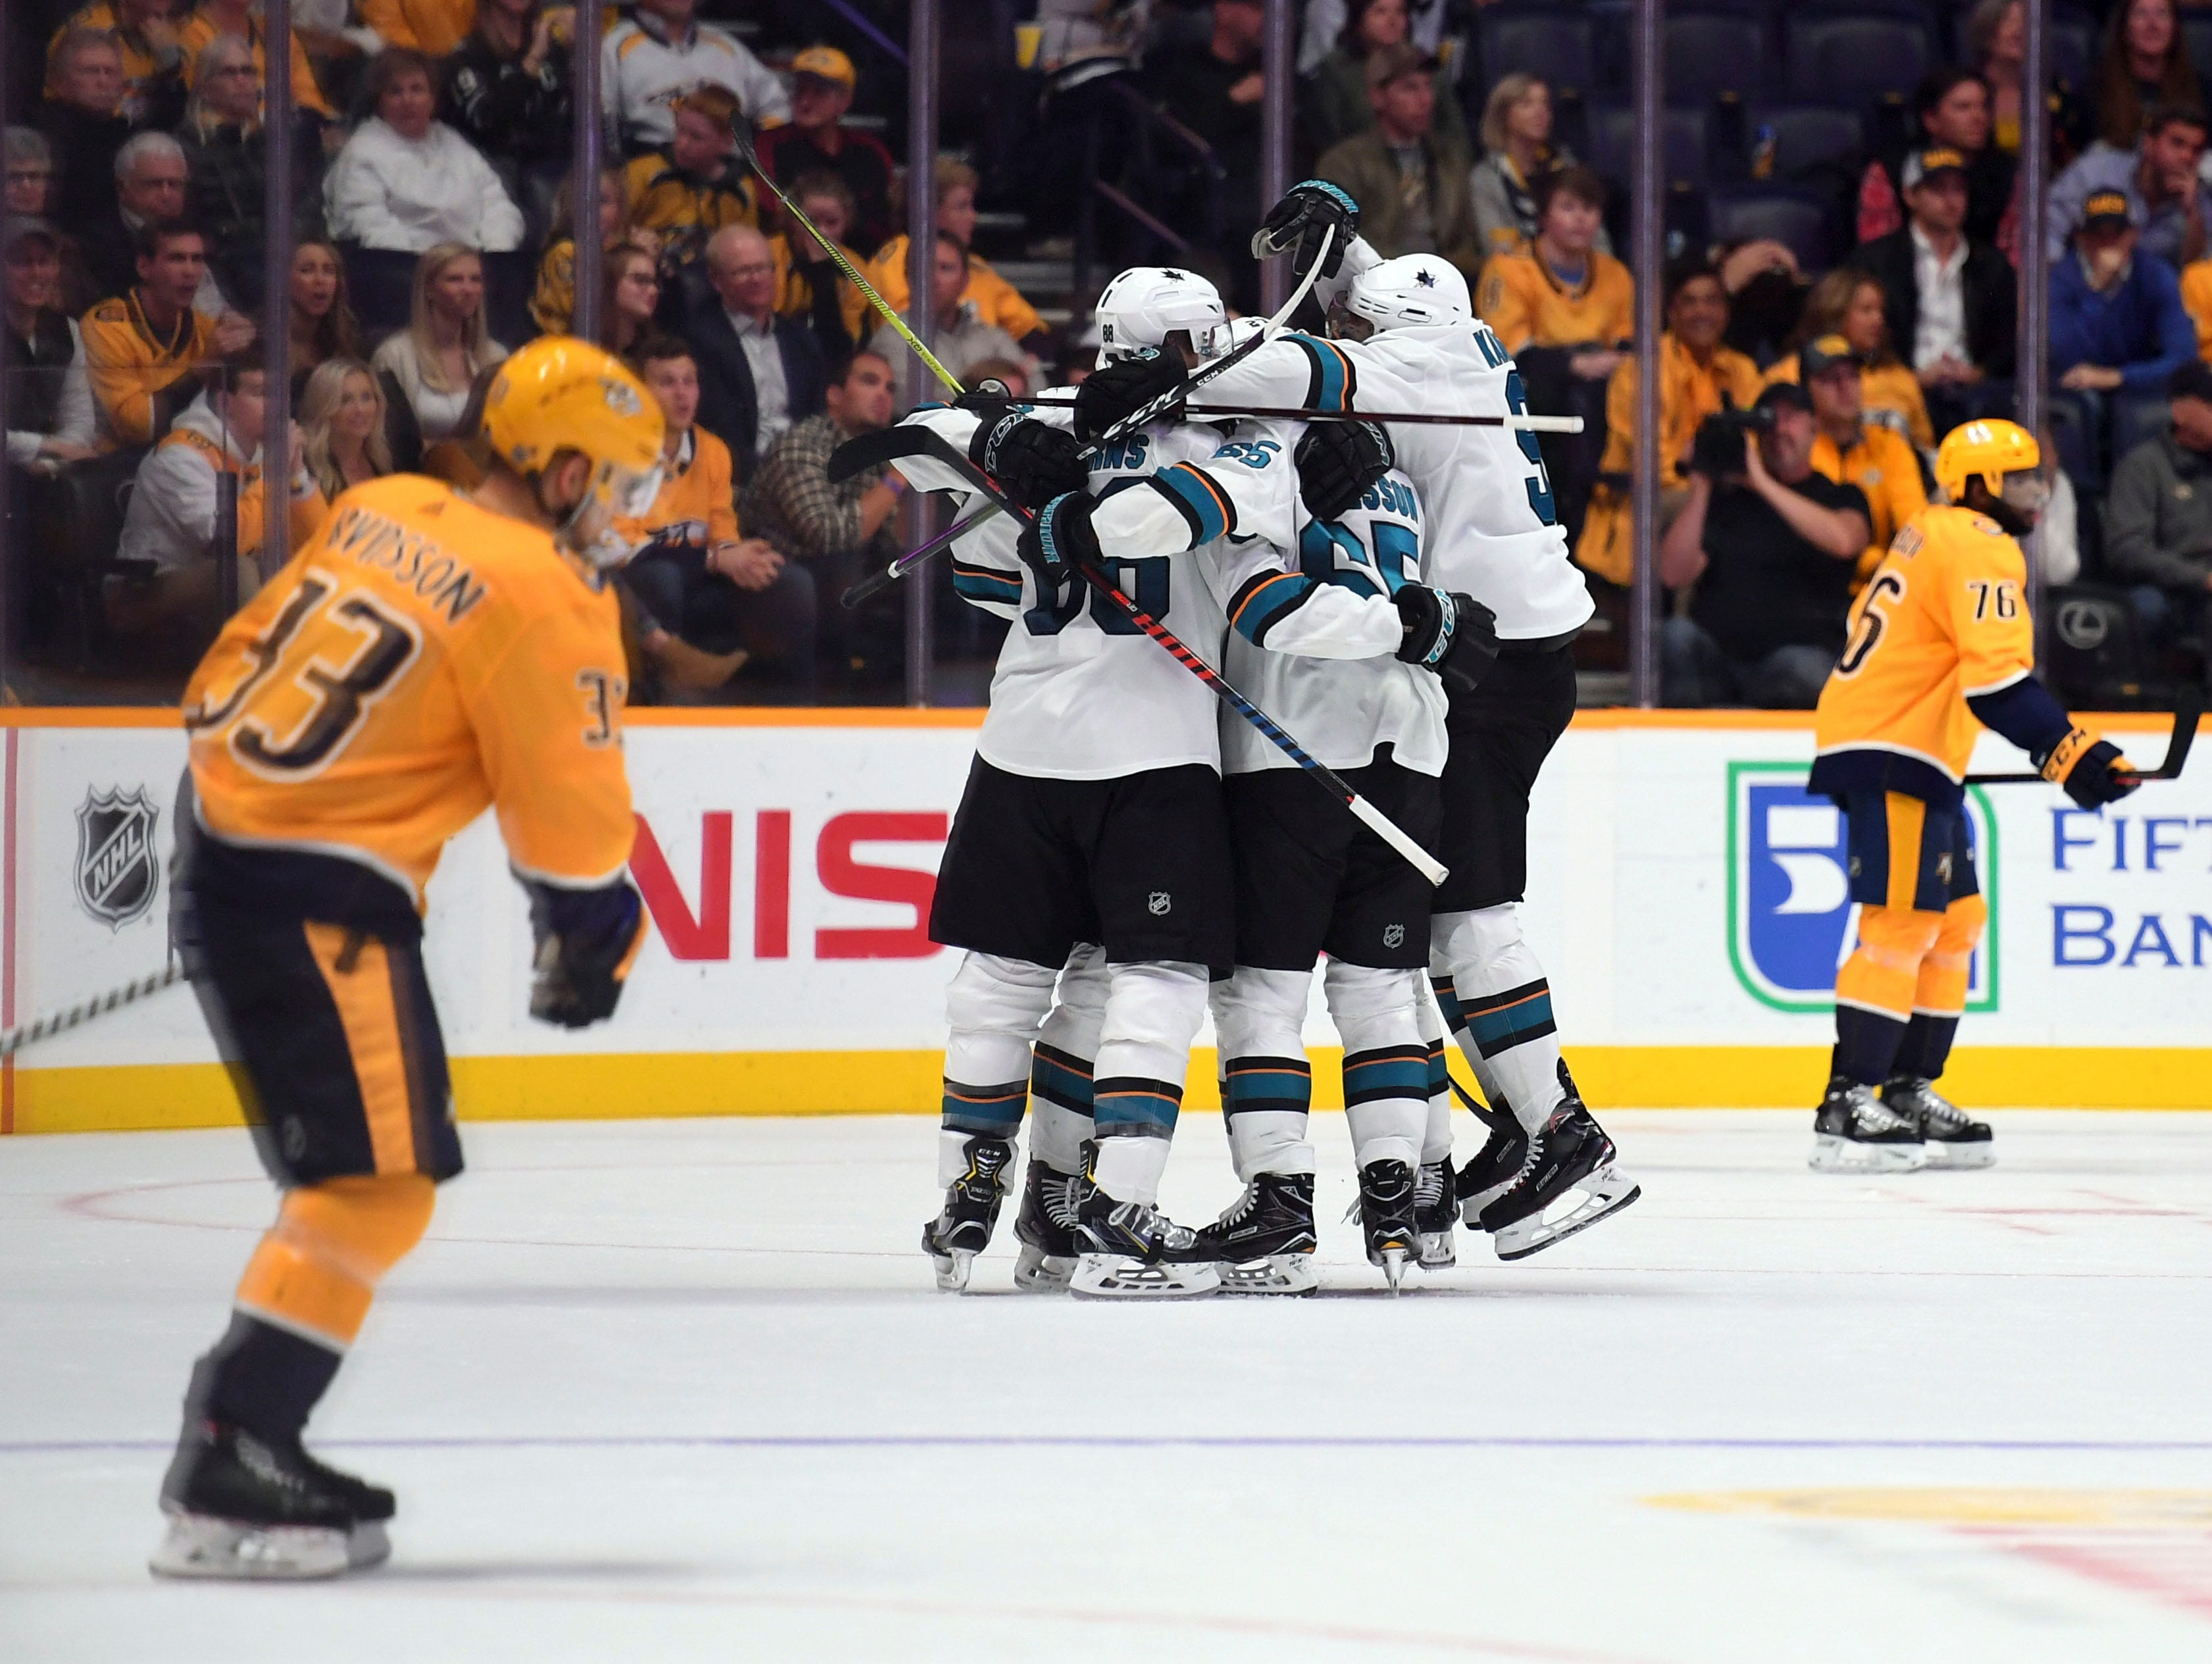 Oct. 23: San Jose Sharks players celebrate after the game-winning goal by defenseman Brent Burns during the third period against the Nashville Predators at Bridgestone Arena.